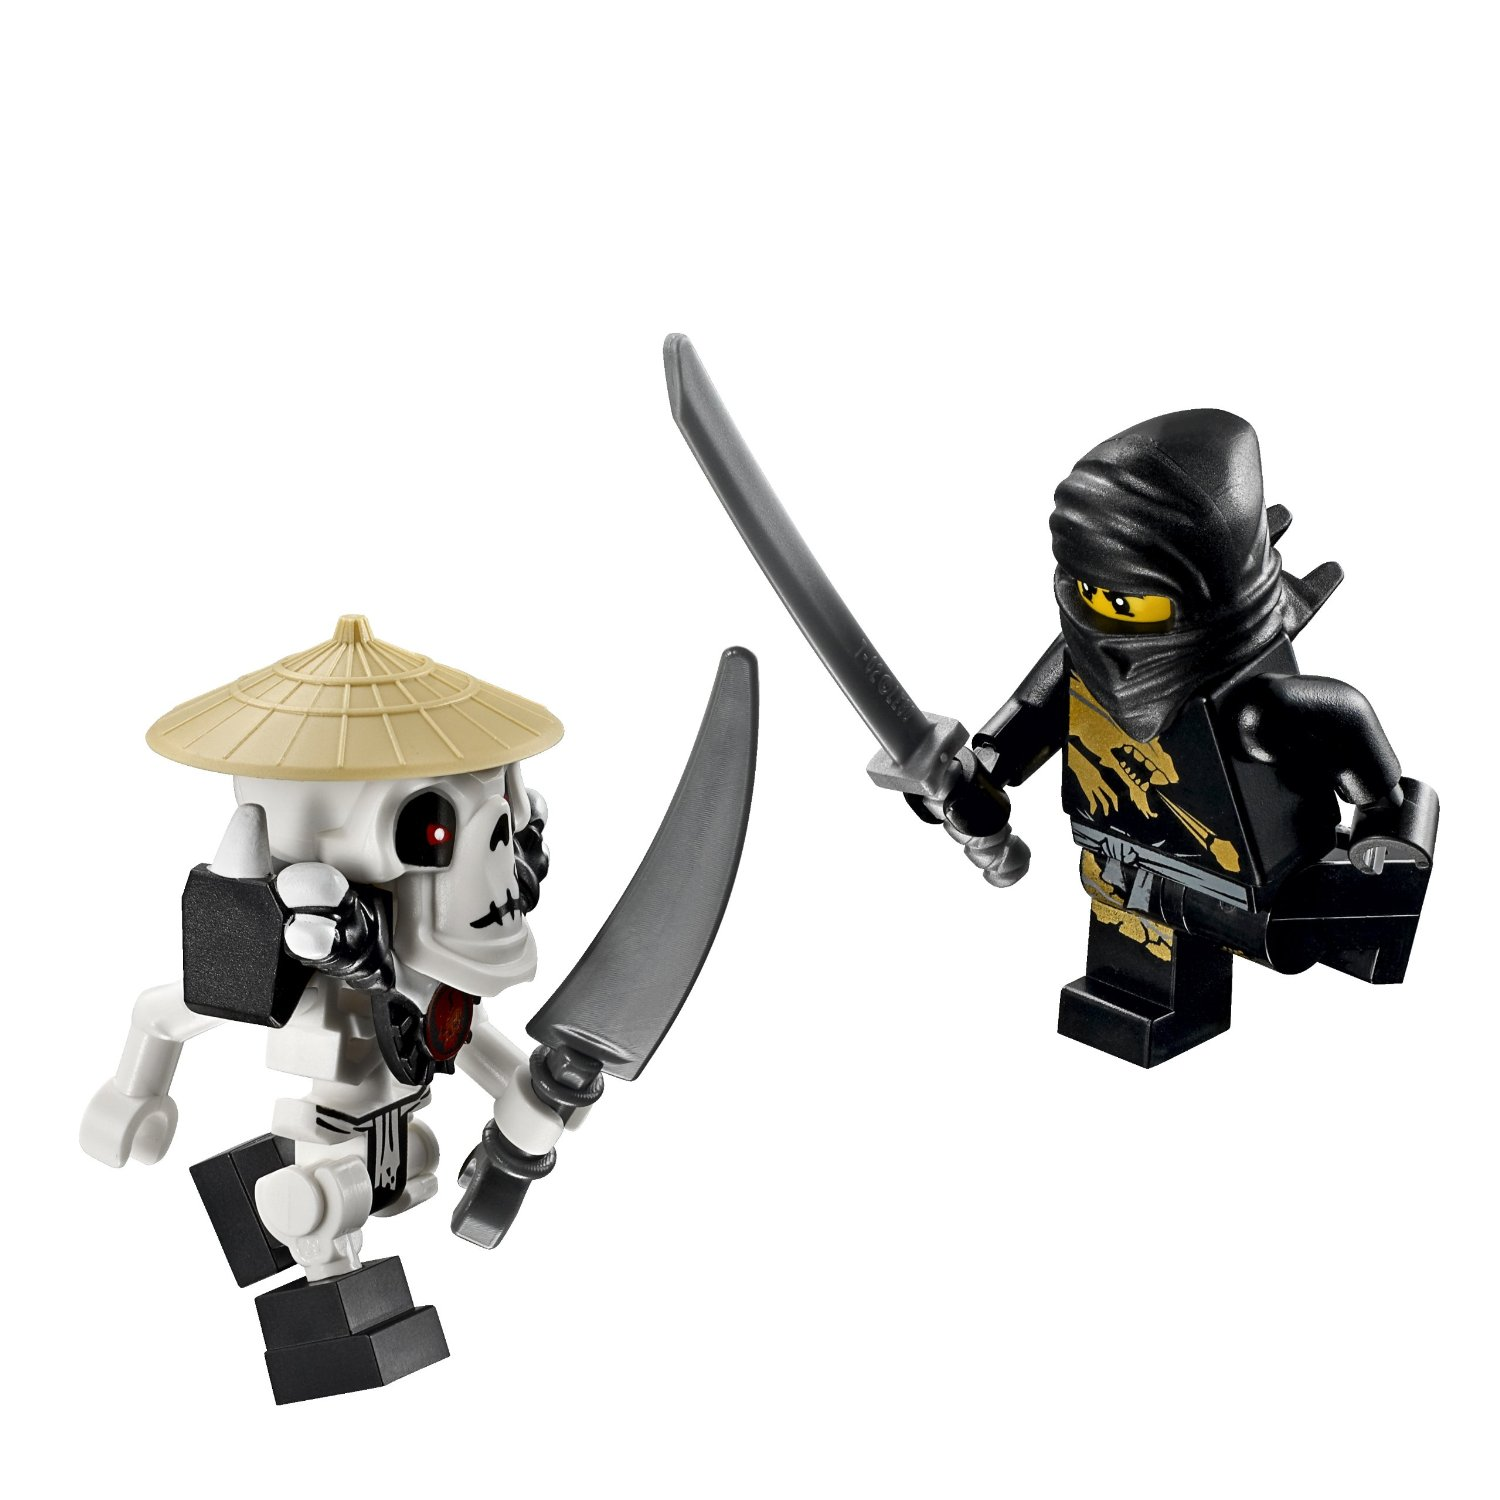 willkommen in der asia welt lego ninjago 2509 erddrache. Black Bedroom Furniture Sets. Home Design Ideas